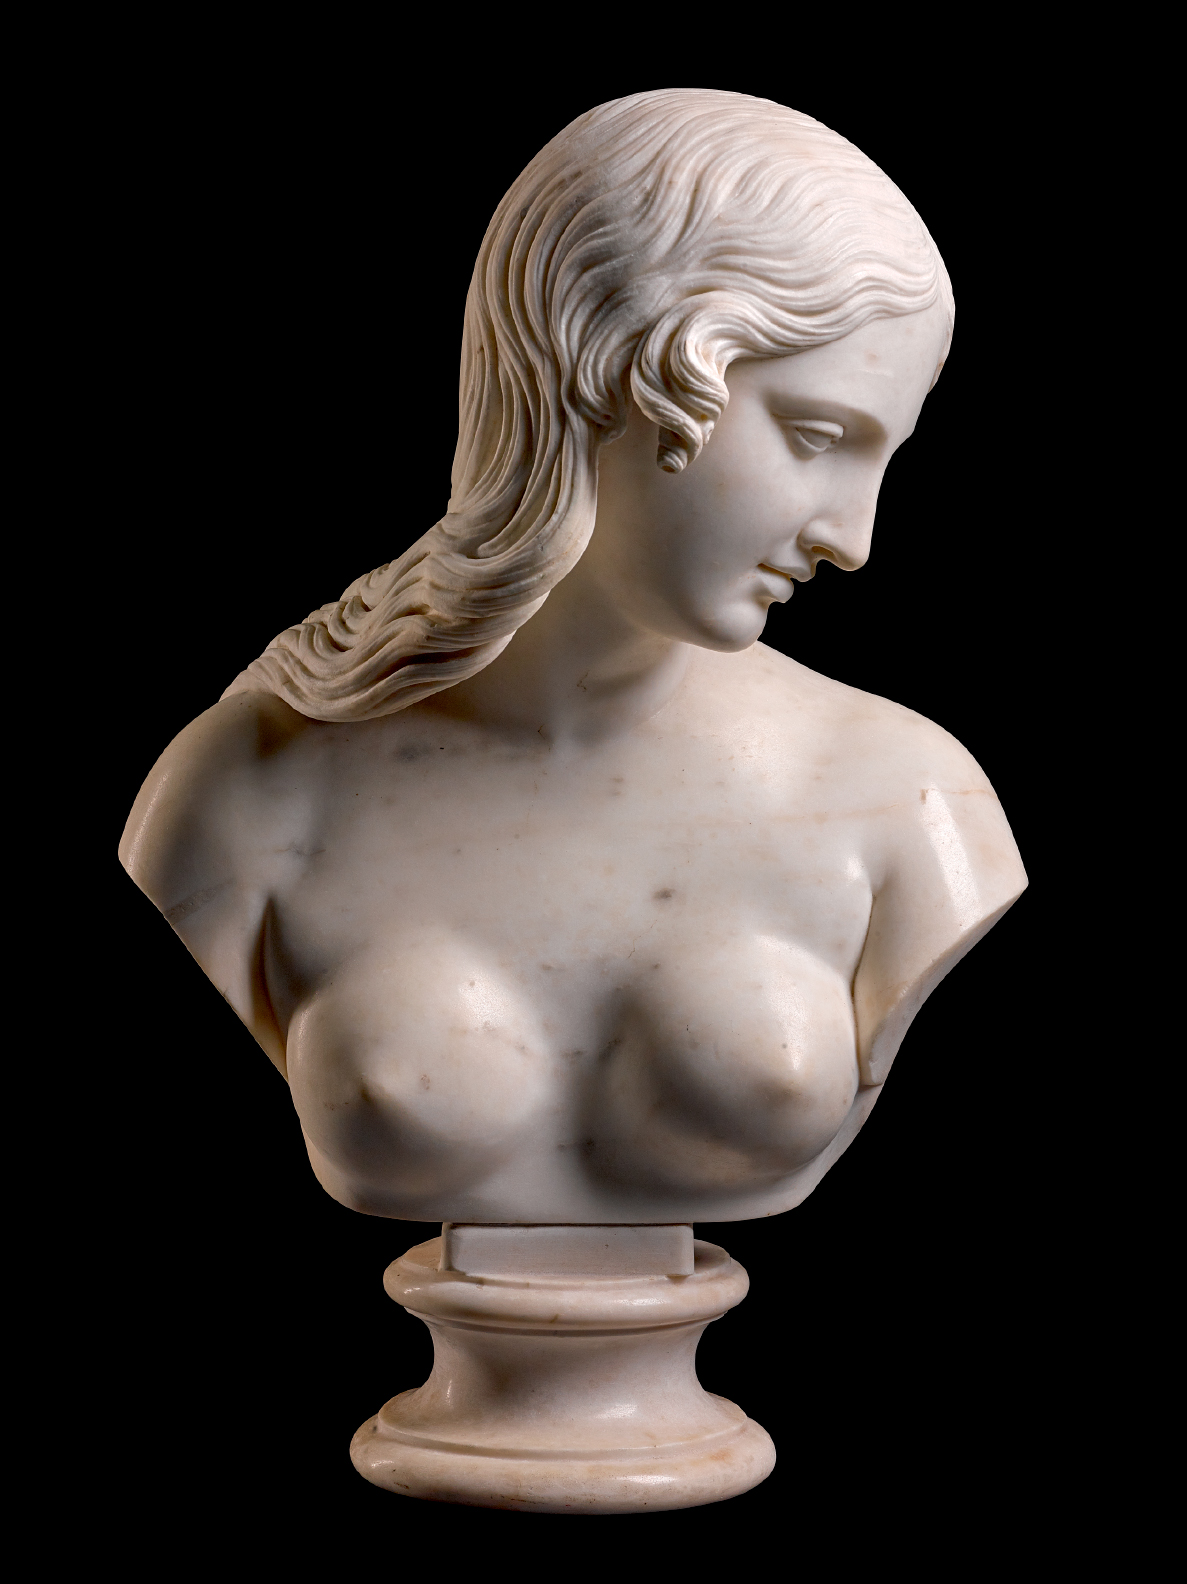 EDWARD HODGES BAILY (1788-1867), BRITISH, MID-19TH CENTURY | BUST OF EVE